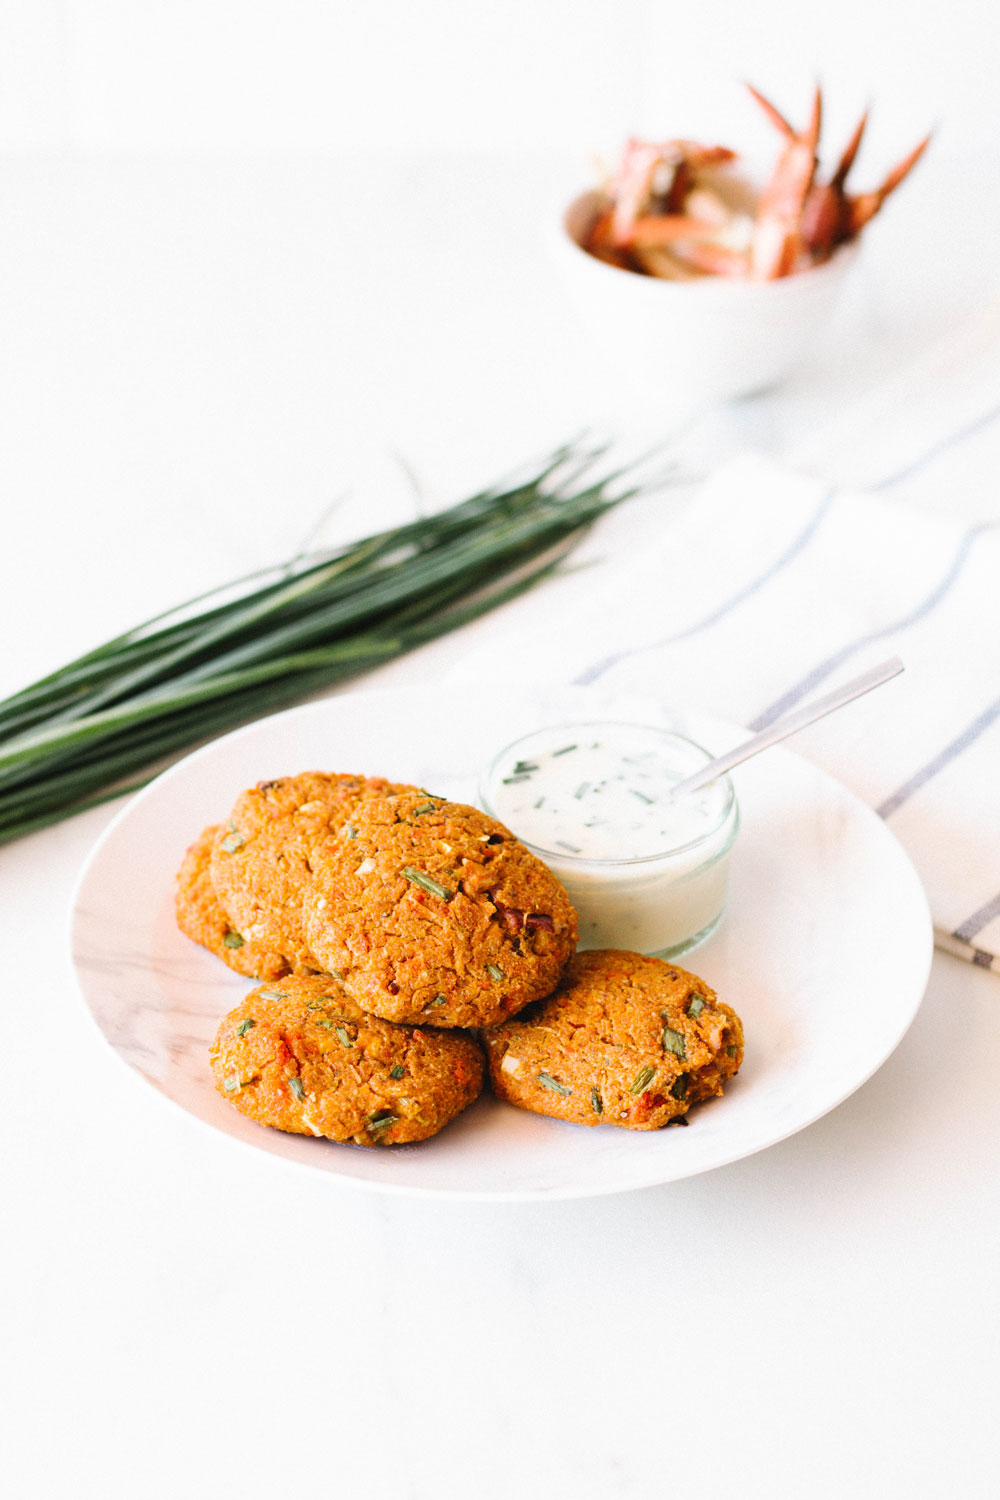 These Light & Simple Baked Crab Cakes are low in fat, and each cake only contains around 50 calories. They're made with simple, wholesome ingredients, and you can serve them with a fresh green salad, oven-roasted veggies, or our delicious summer gazpacho. https://www.spotebi.com/recipes/light-simple-baked-crab-cakes/